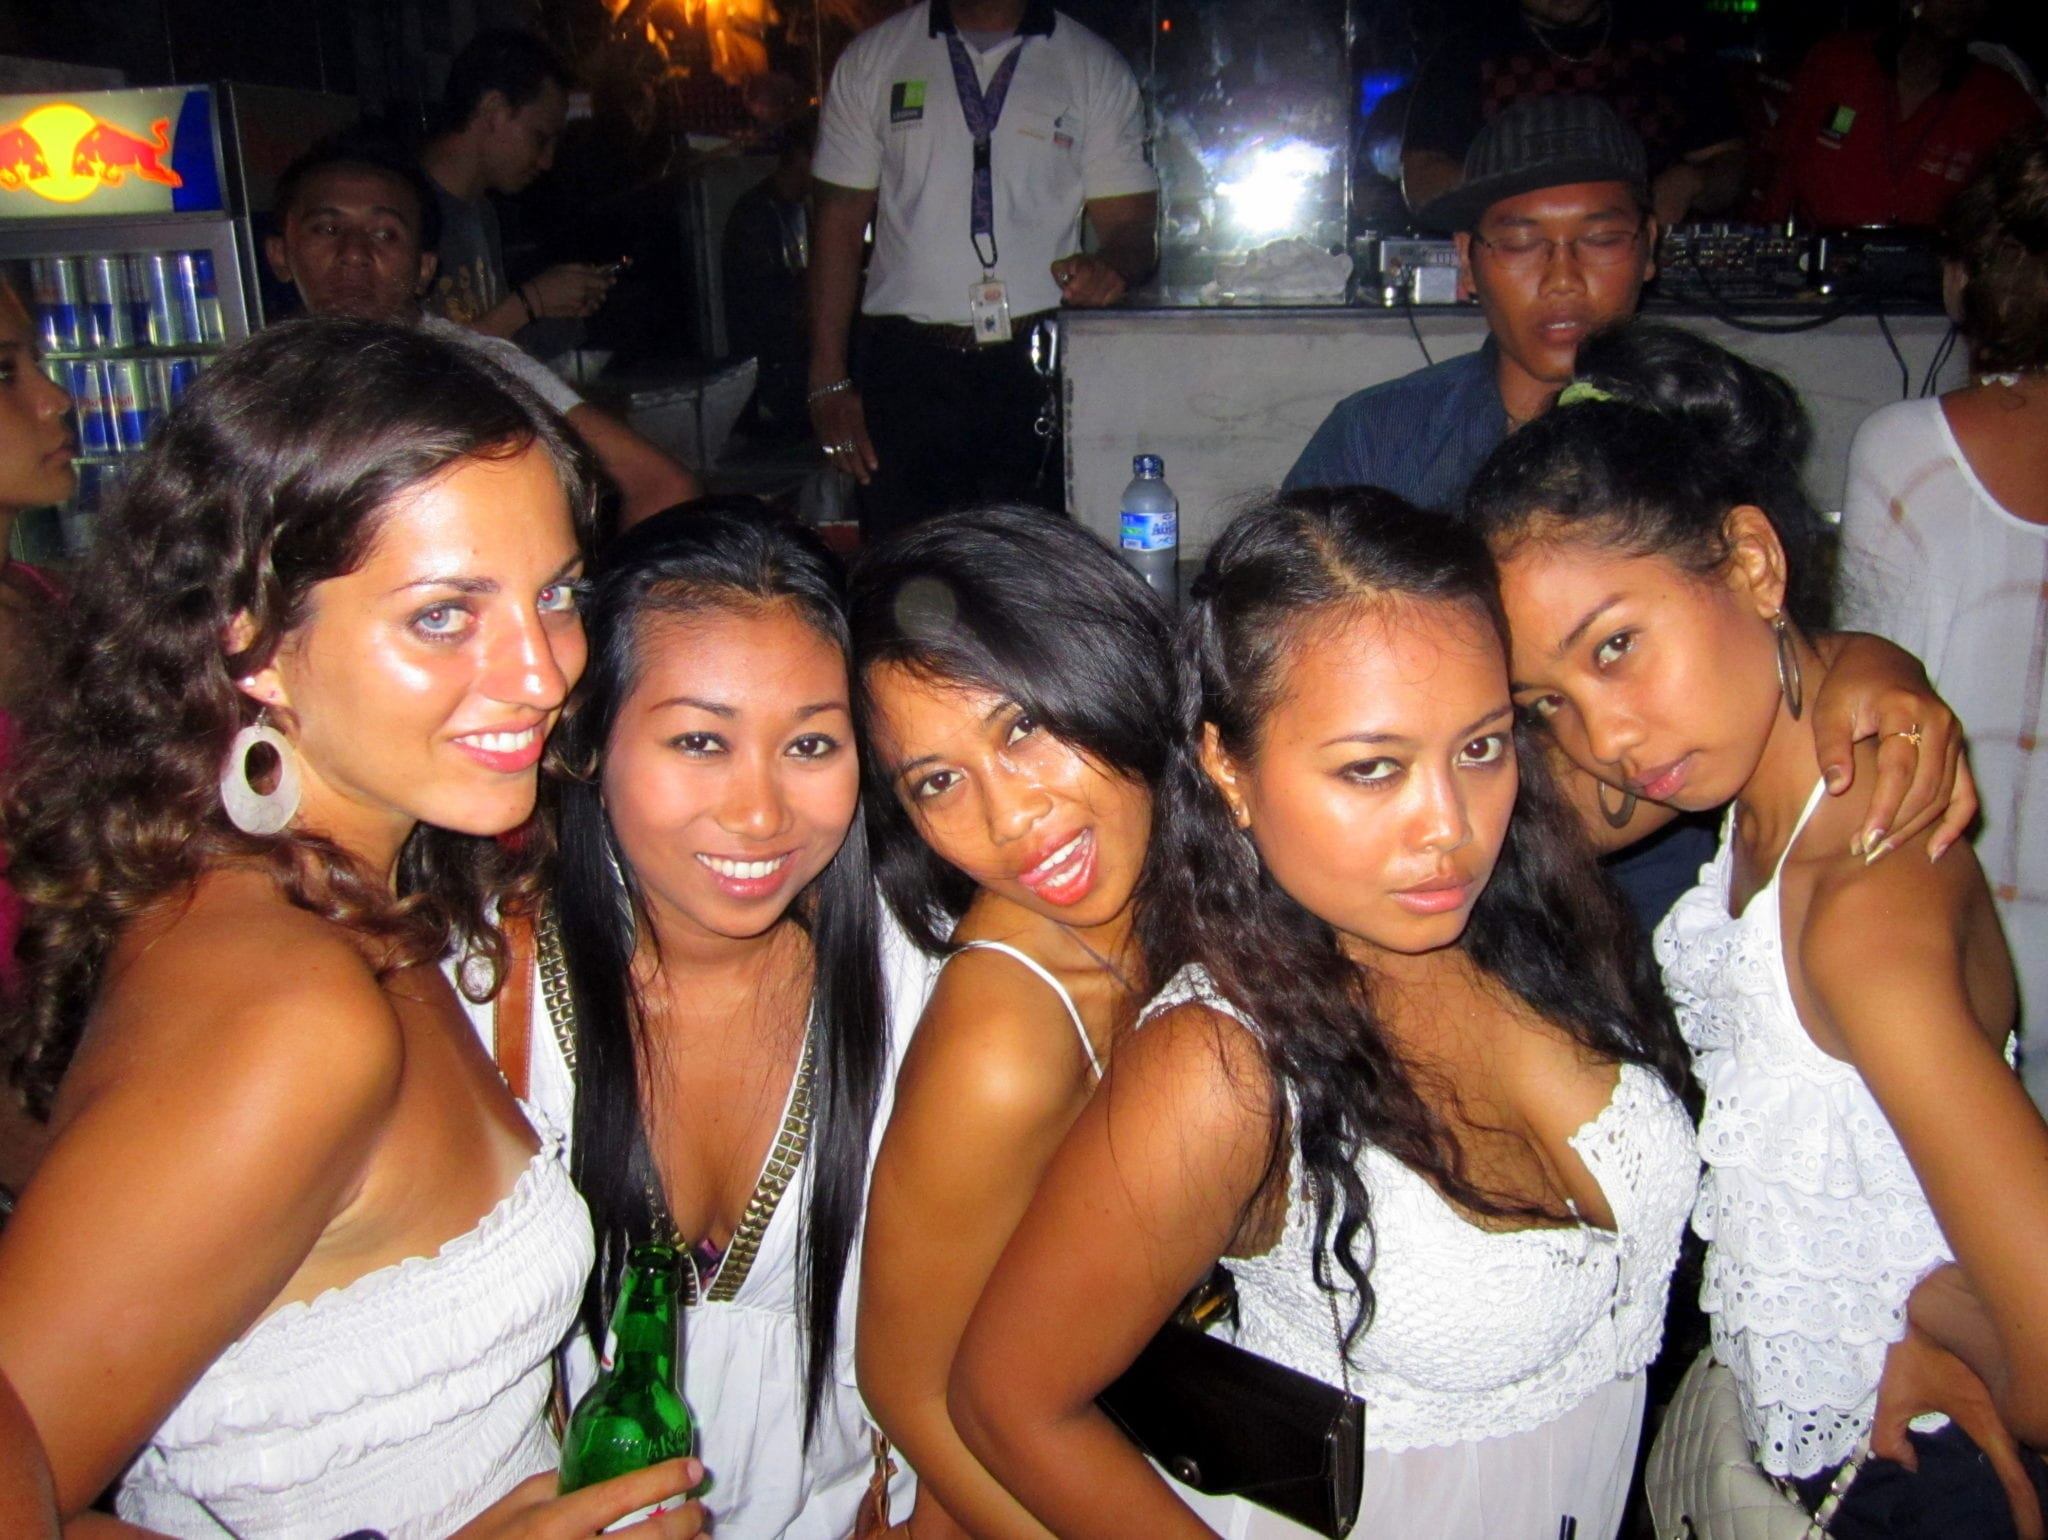 kuta asian personals With nightlife in singapore, the city-state practically transforms itself from an ever-so-efficient business hub to a buzzing network of bars and nightclubs as.